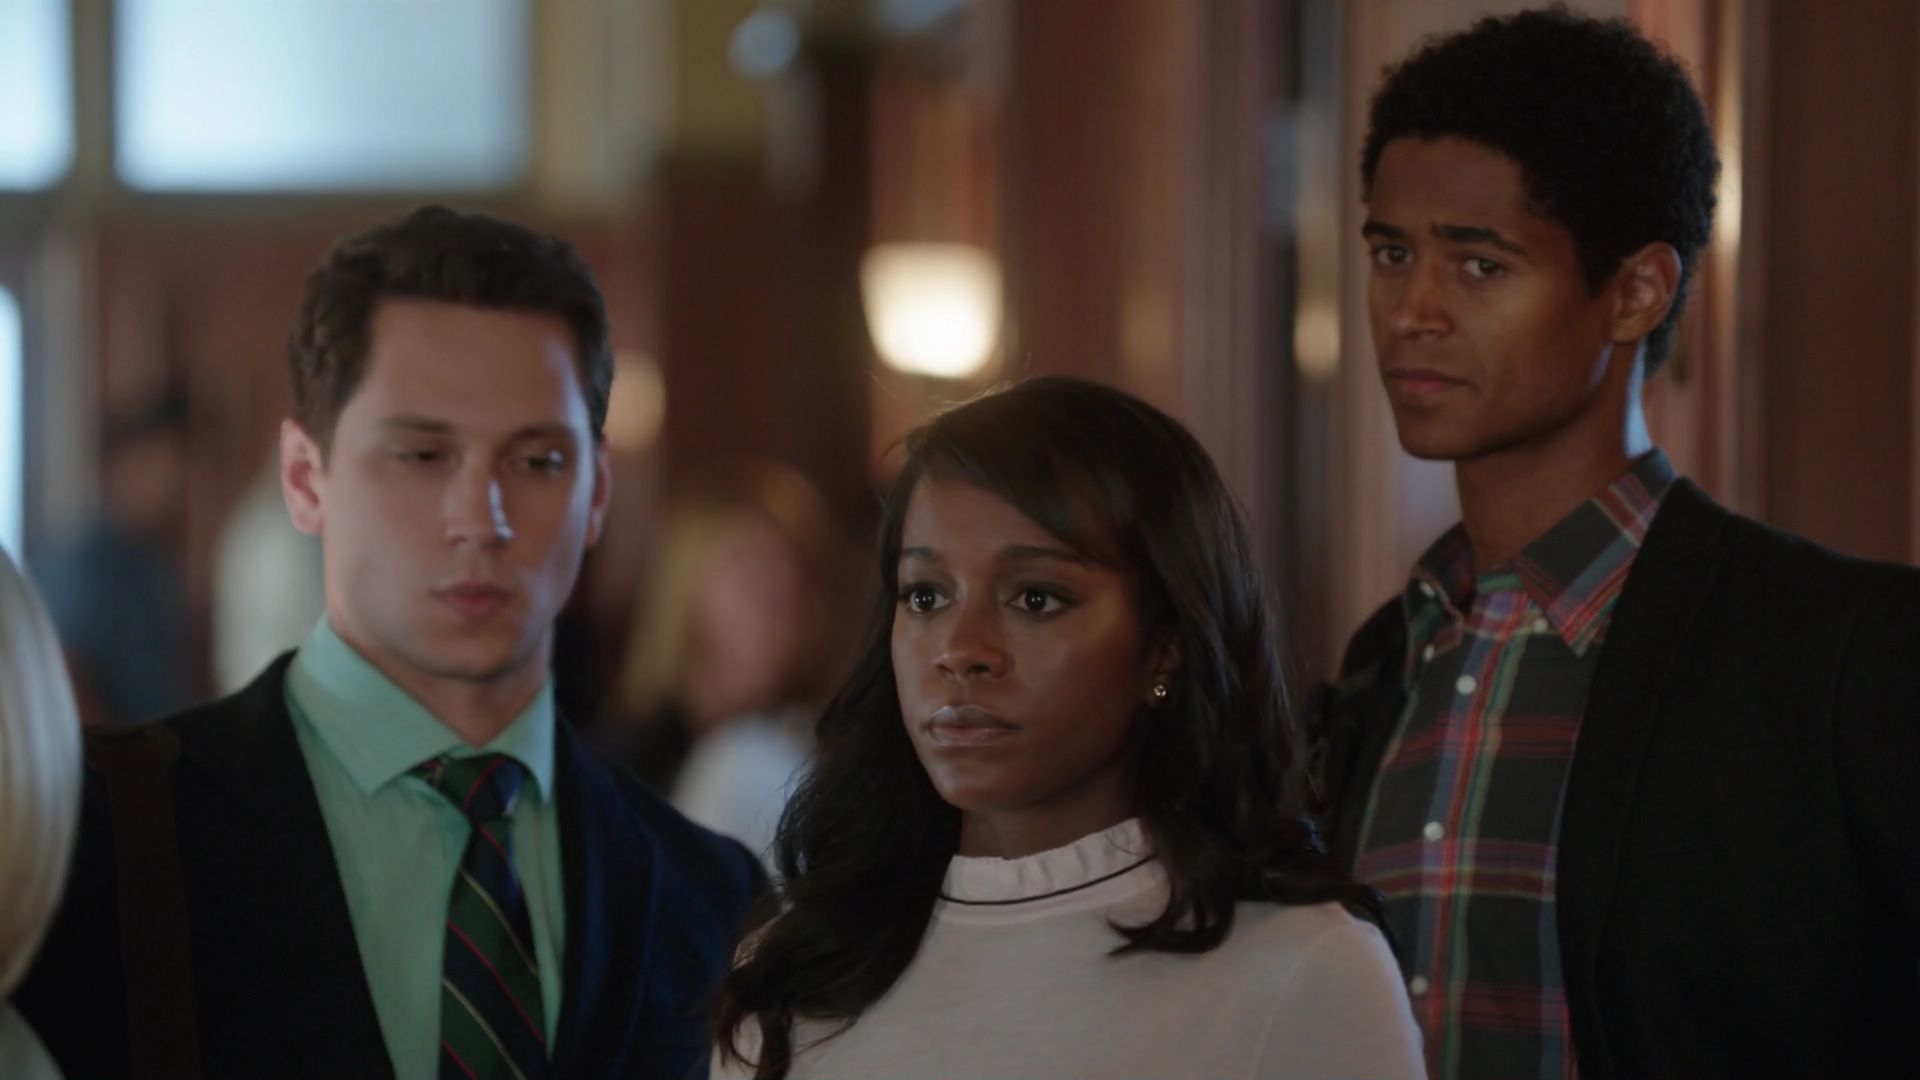 'How To Get Away With Murder' Season 1 Episode 2 Captures